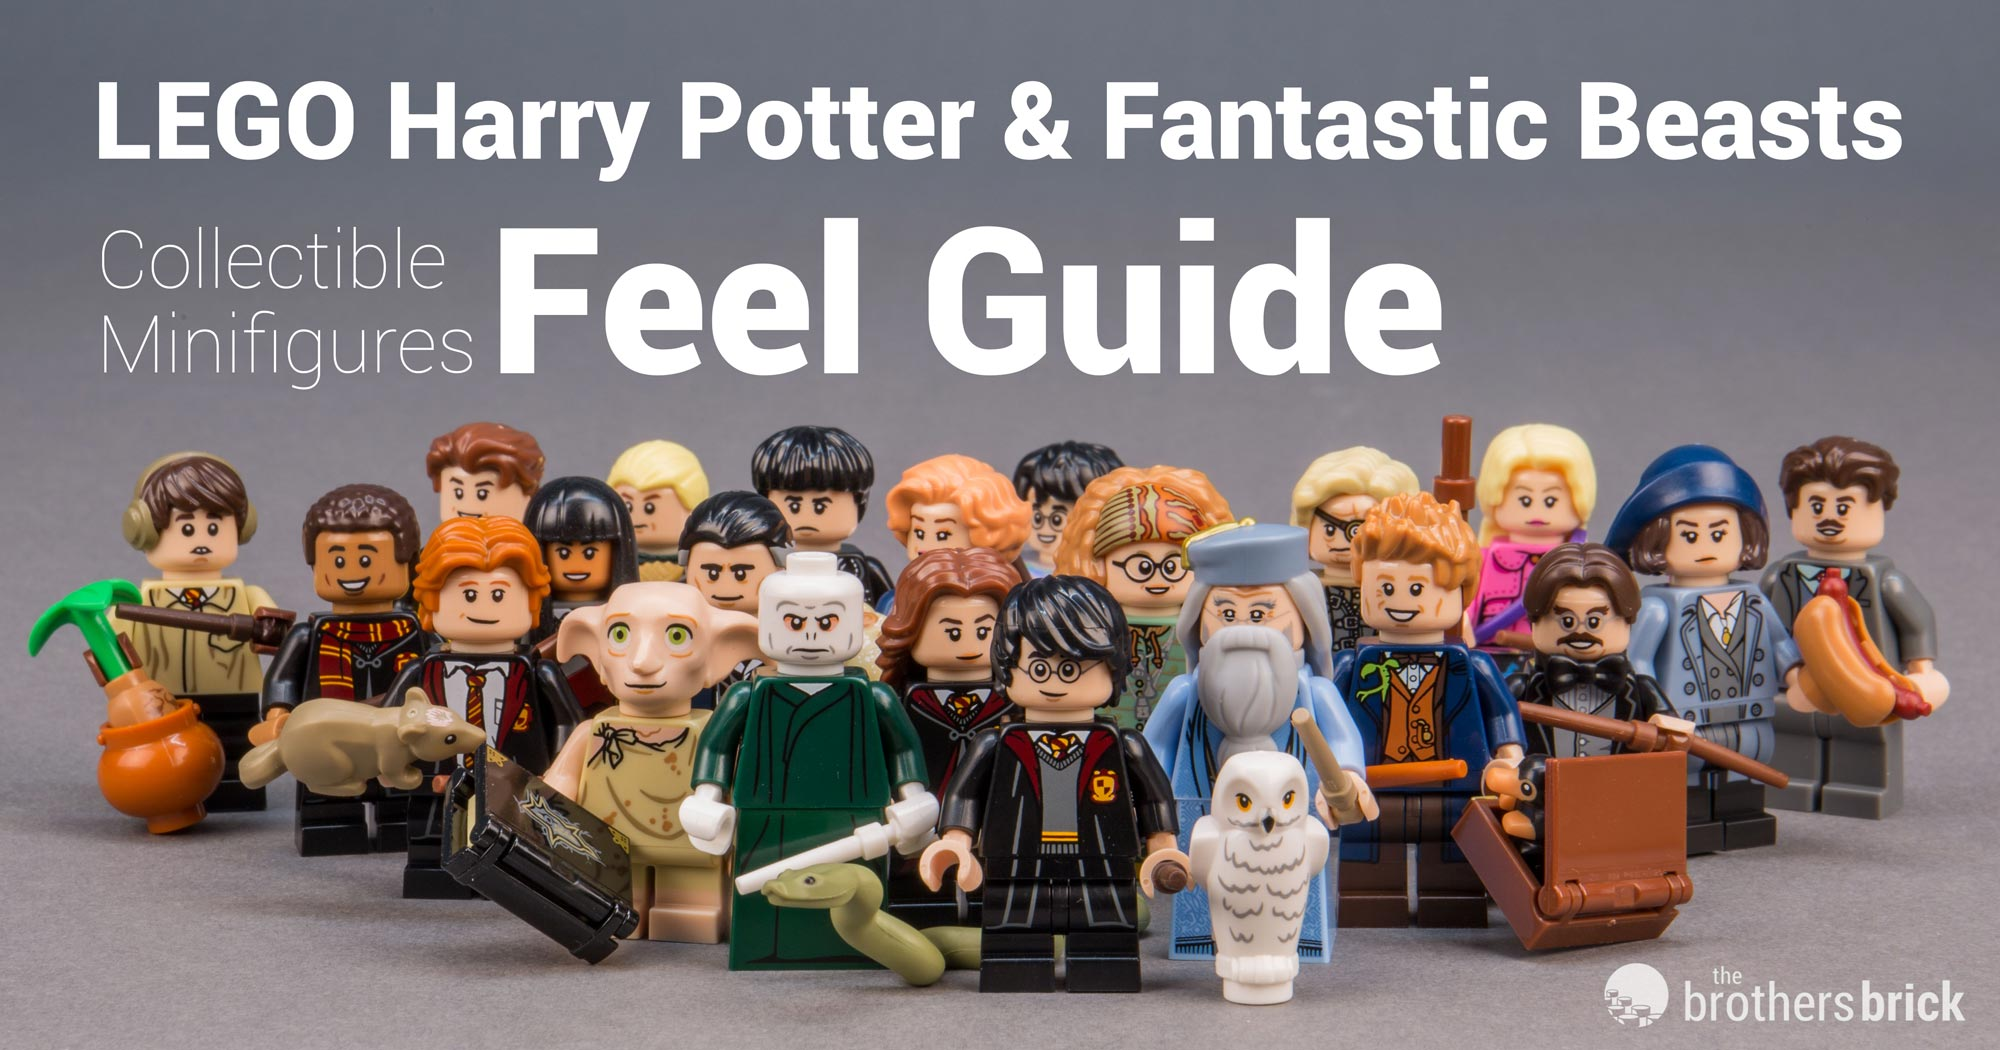 Lego 71022 Harry Potter And Fantastic Beasts Collectible Minifigures